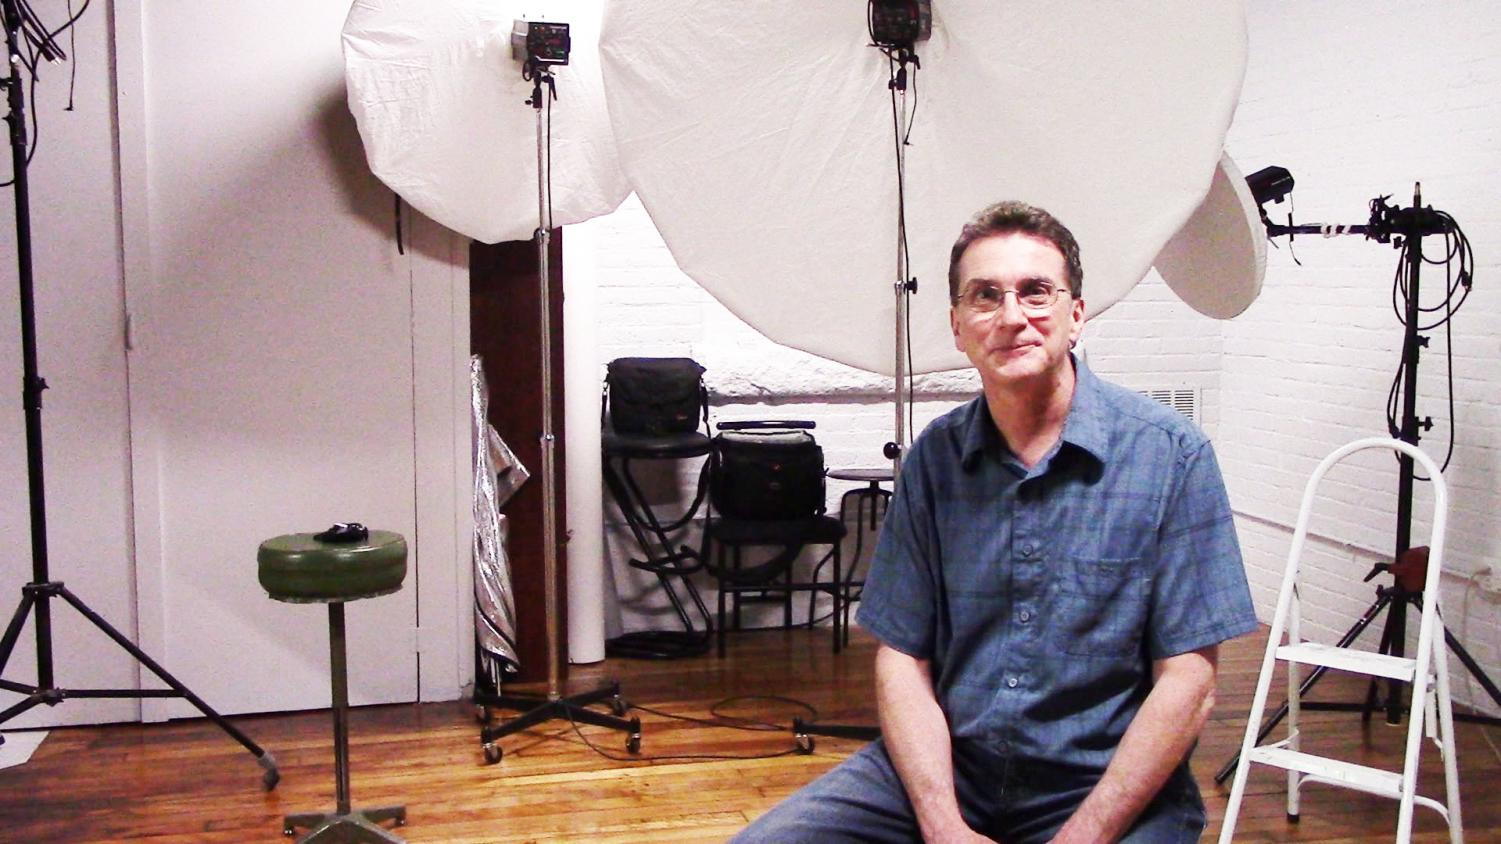 Franklin-based photographer Paul Vicario sits down in his studio for an interview.